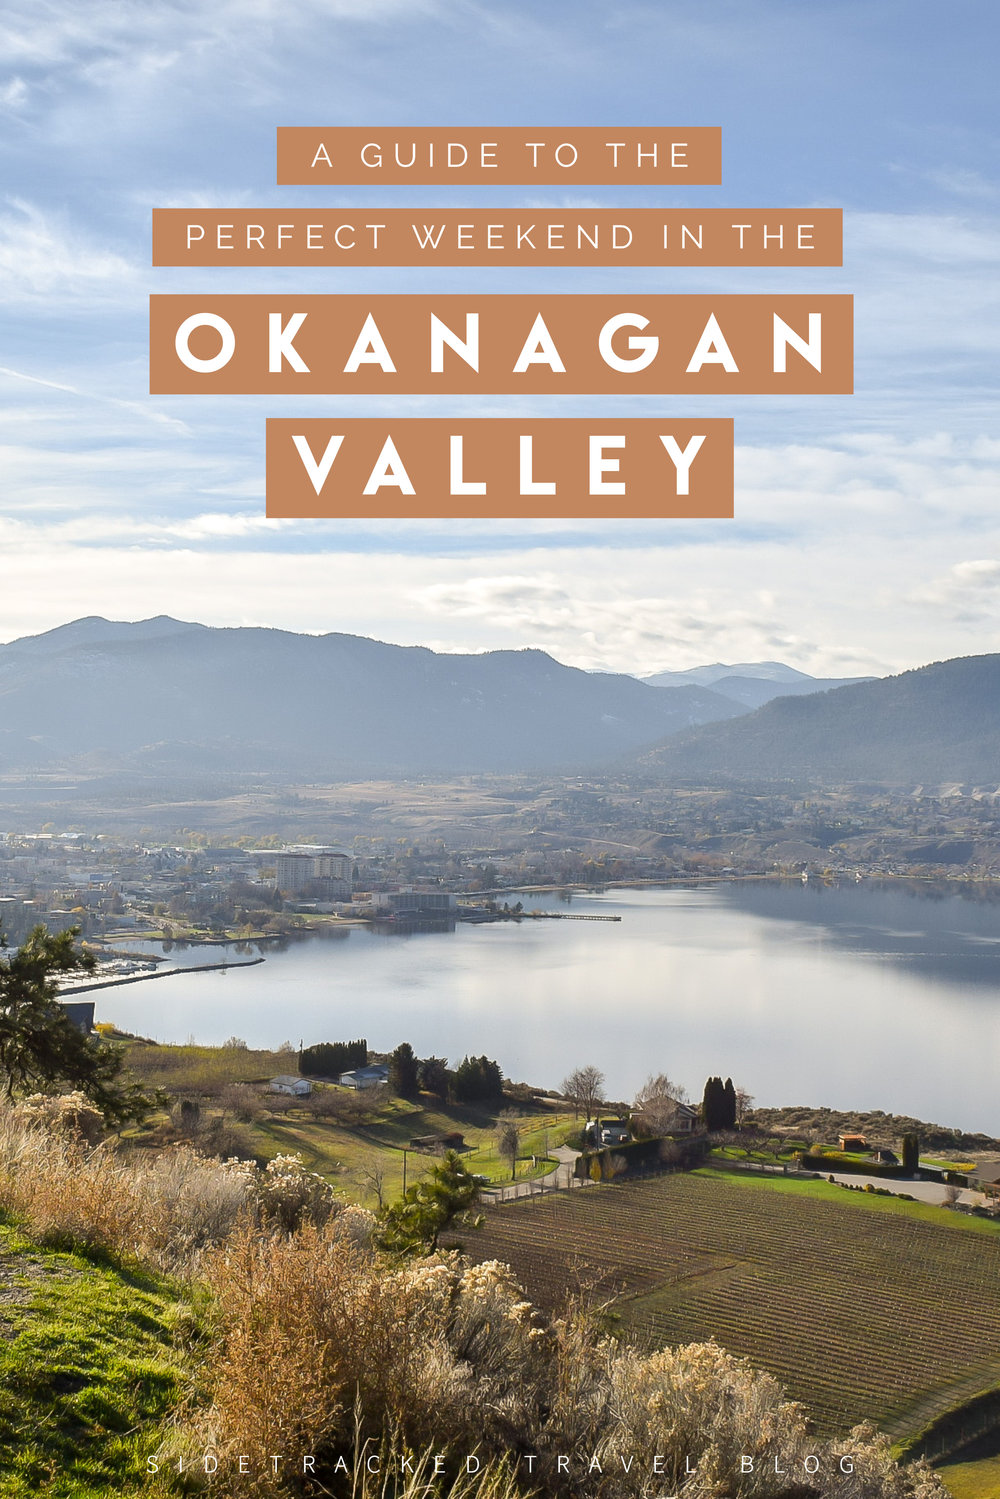 Often overlooked by travelers heading either to the coast or the Rocky Mountains, the Okanagan Valley is one of British Columbia's hidden gems. In this guide created in partnership with @Expedia.ca you'll find useful info on what to do, where to eat, and more so you can start planning your next weekend getaway to the Okanagan!